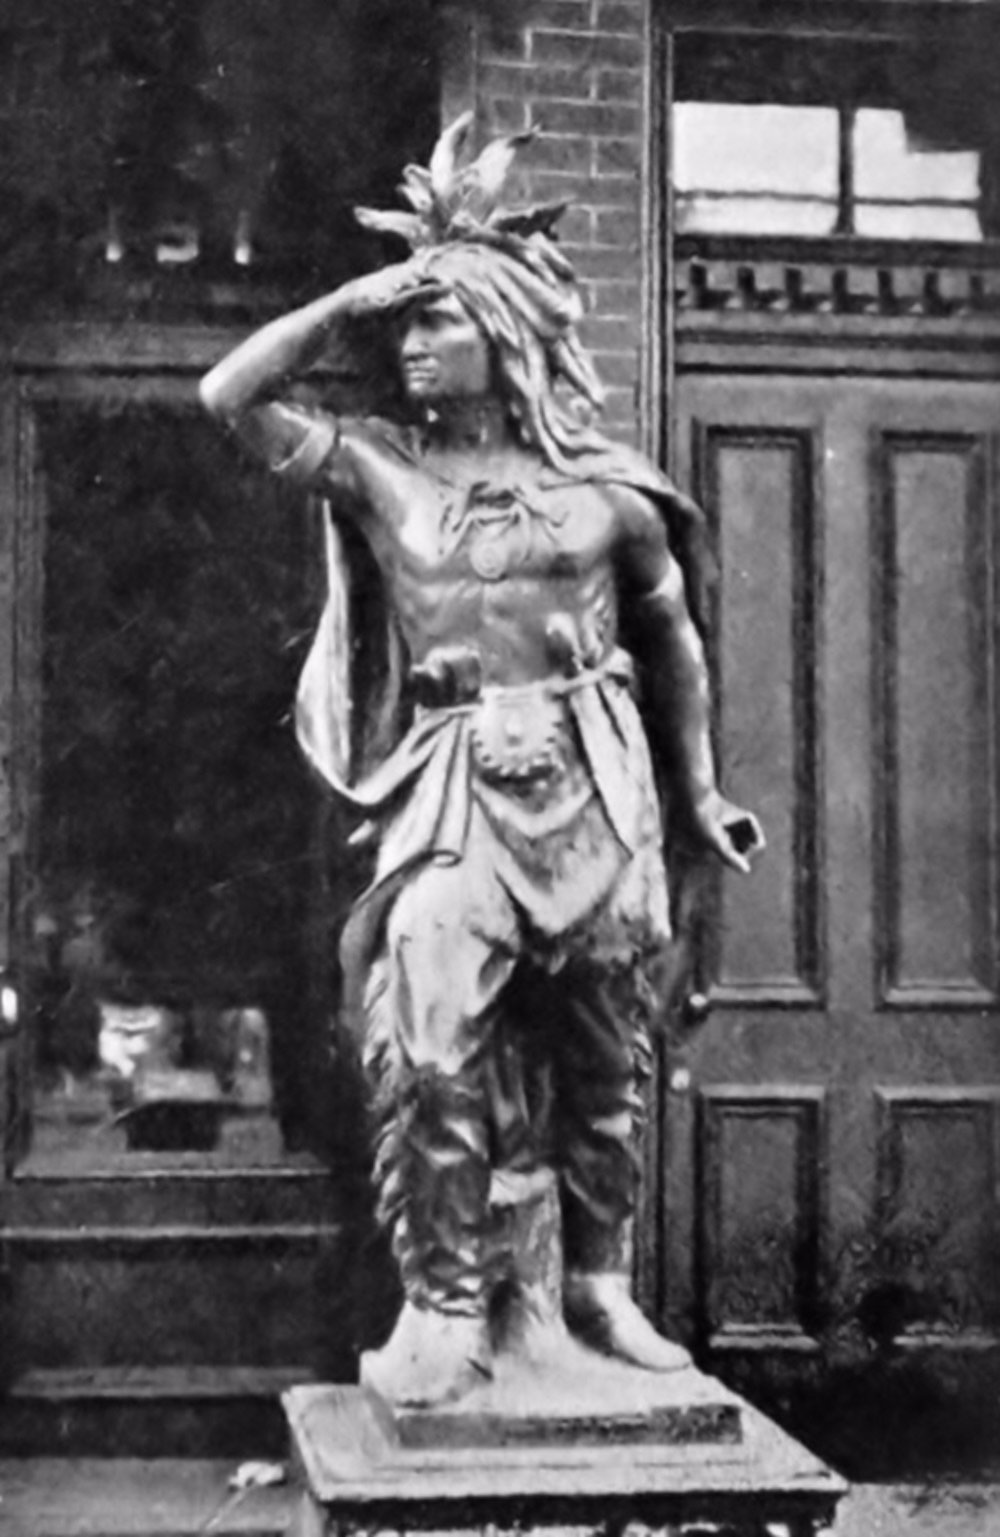 The Cigar Store Indian and Other Vintage Advertising Sculptures